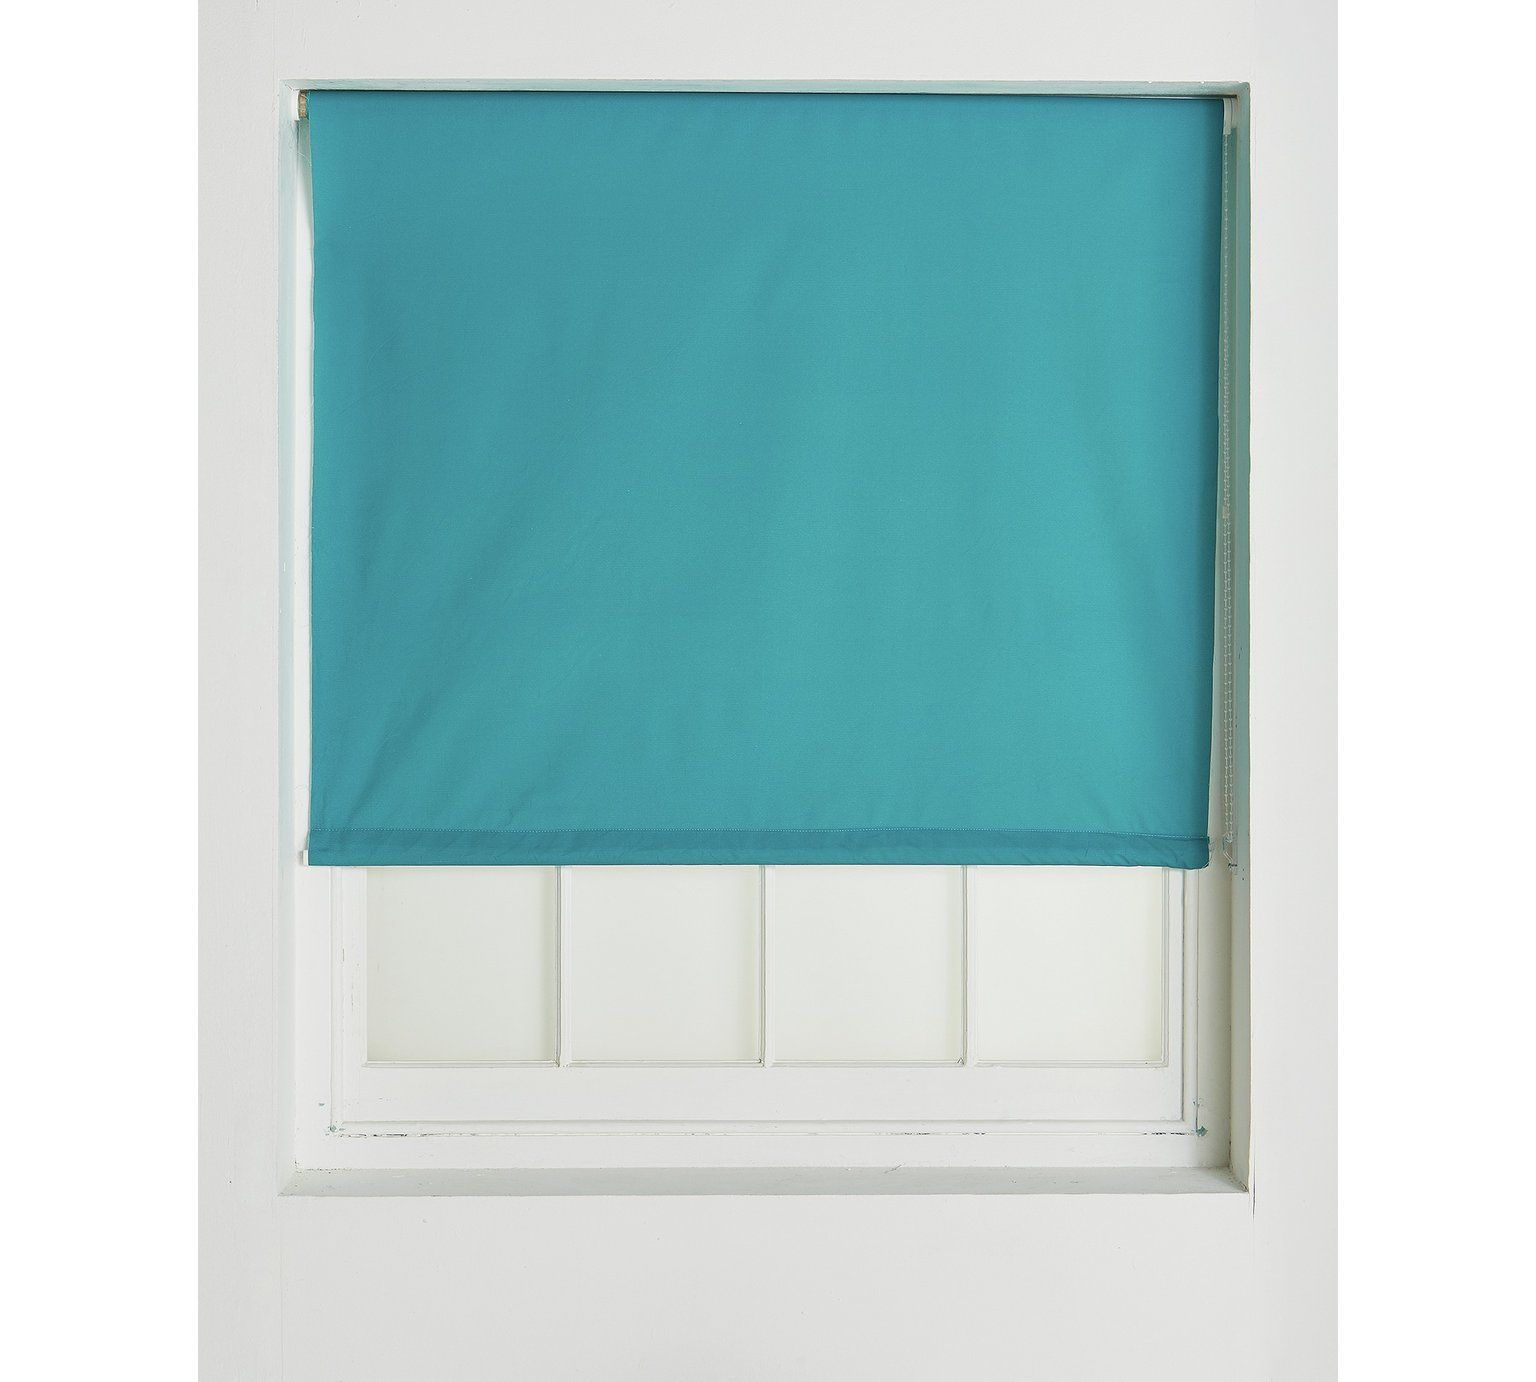 Buy Colourmatch Blackout Thermal Roller Blind  3Ft  Teal